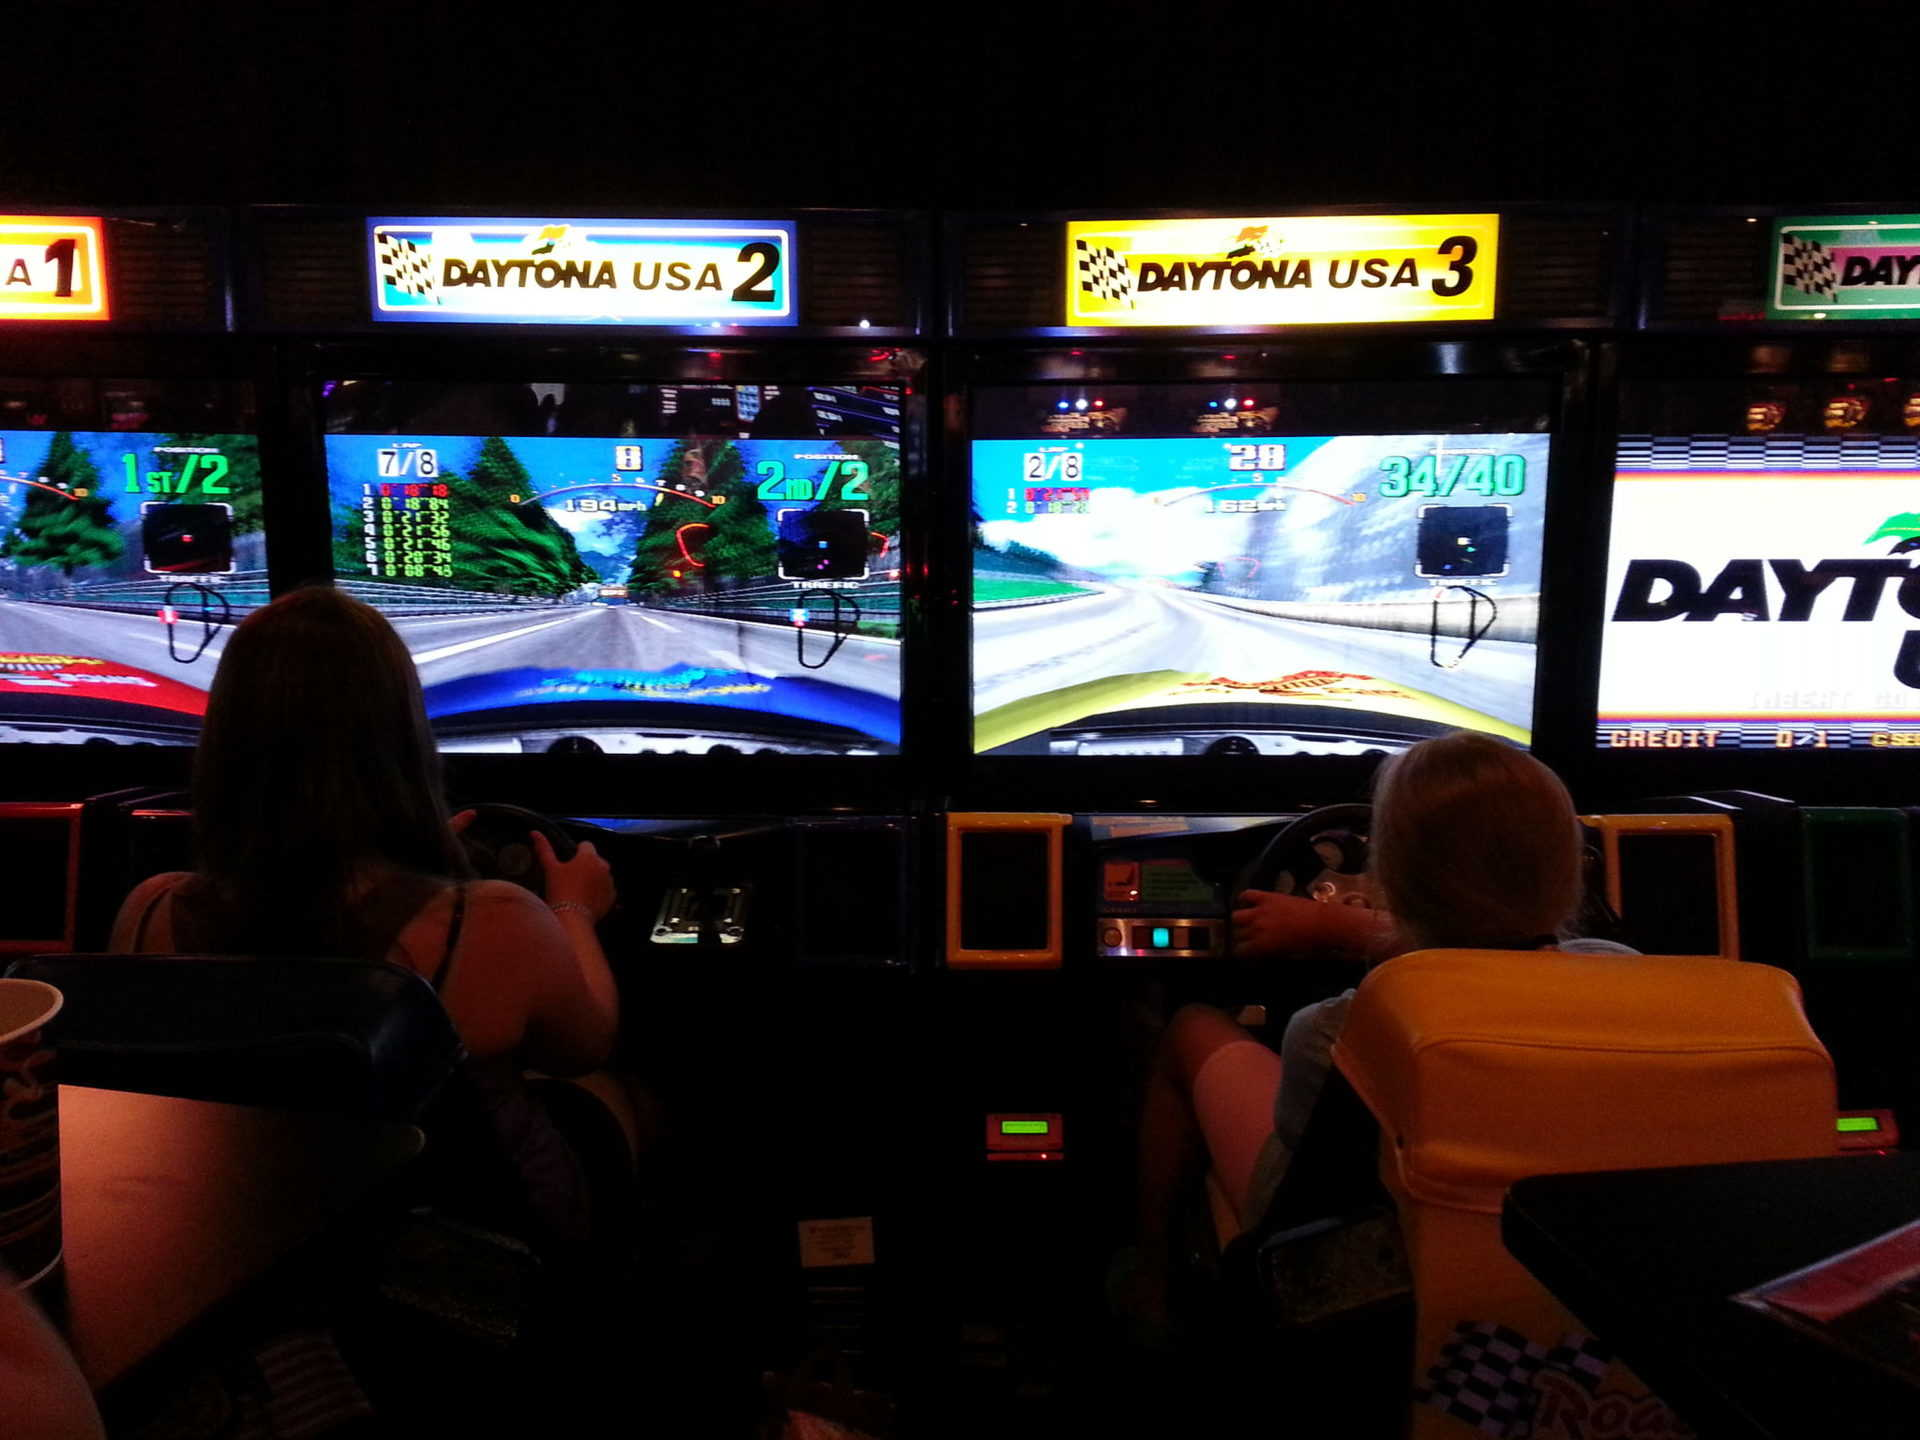 Dave and Busters Game Screens